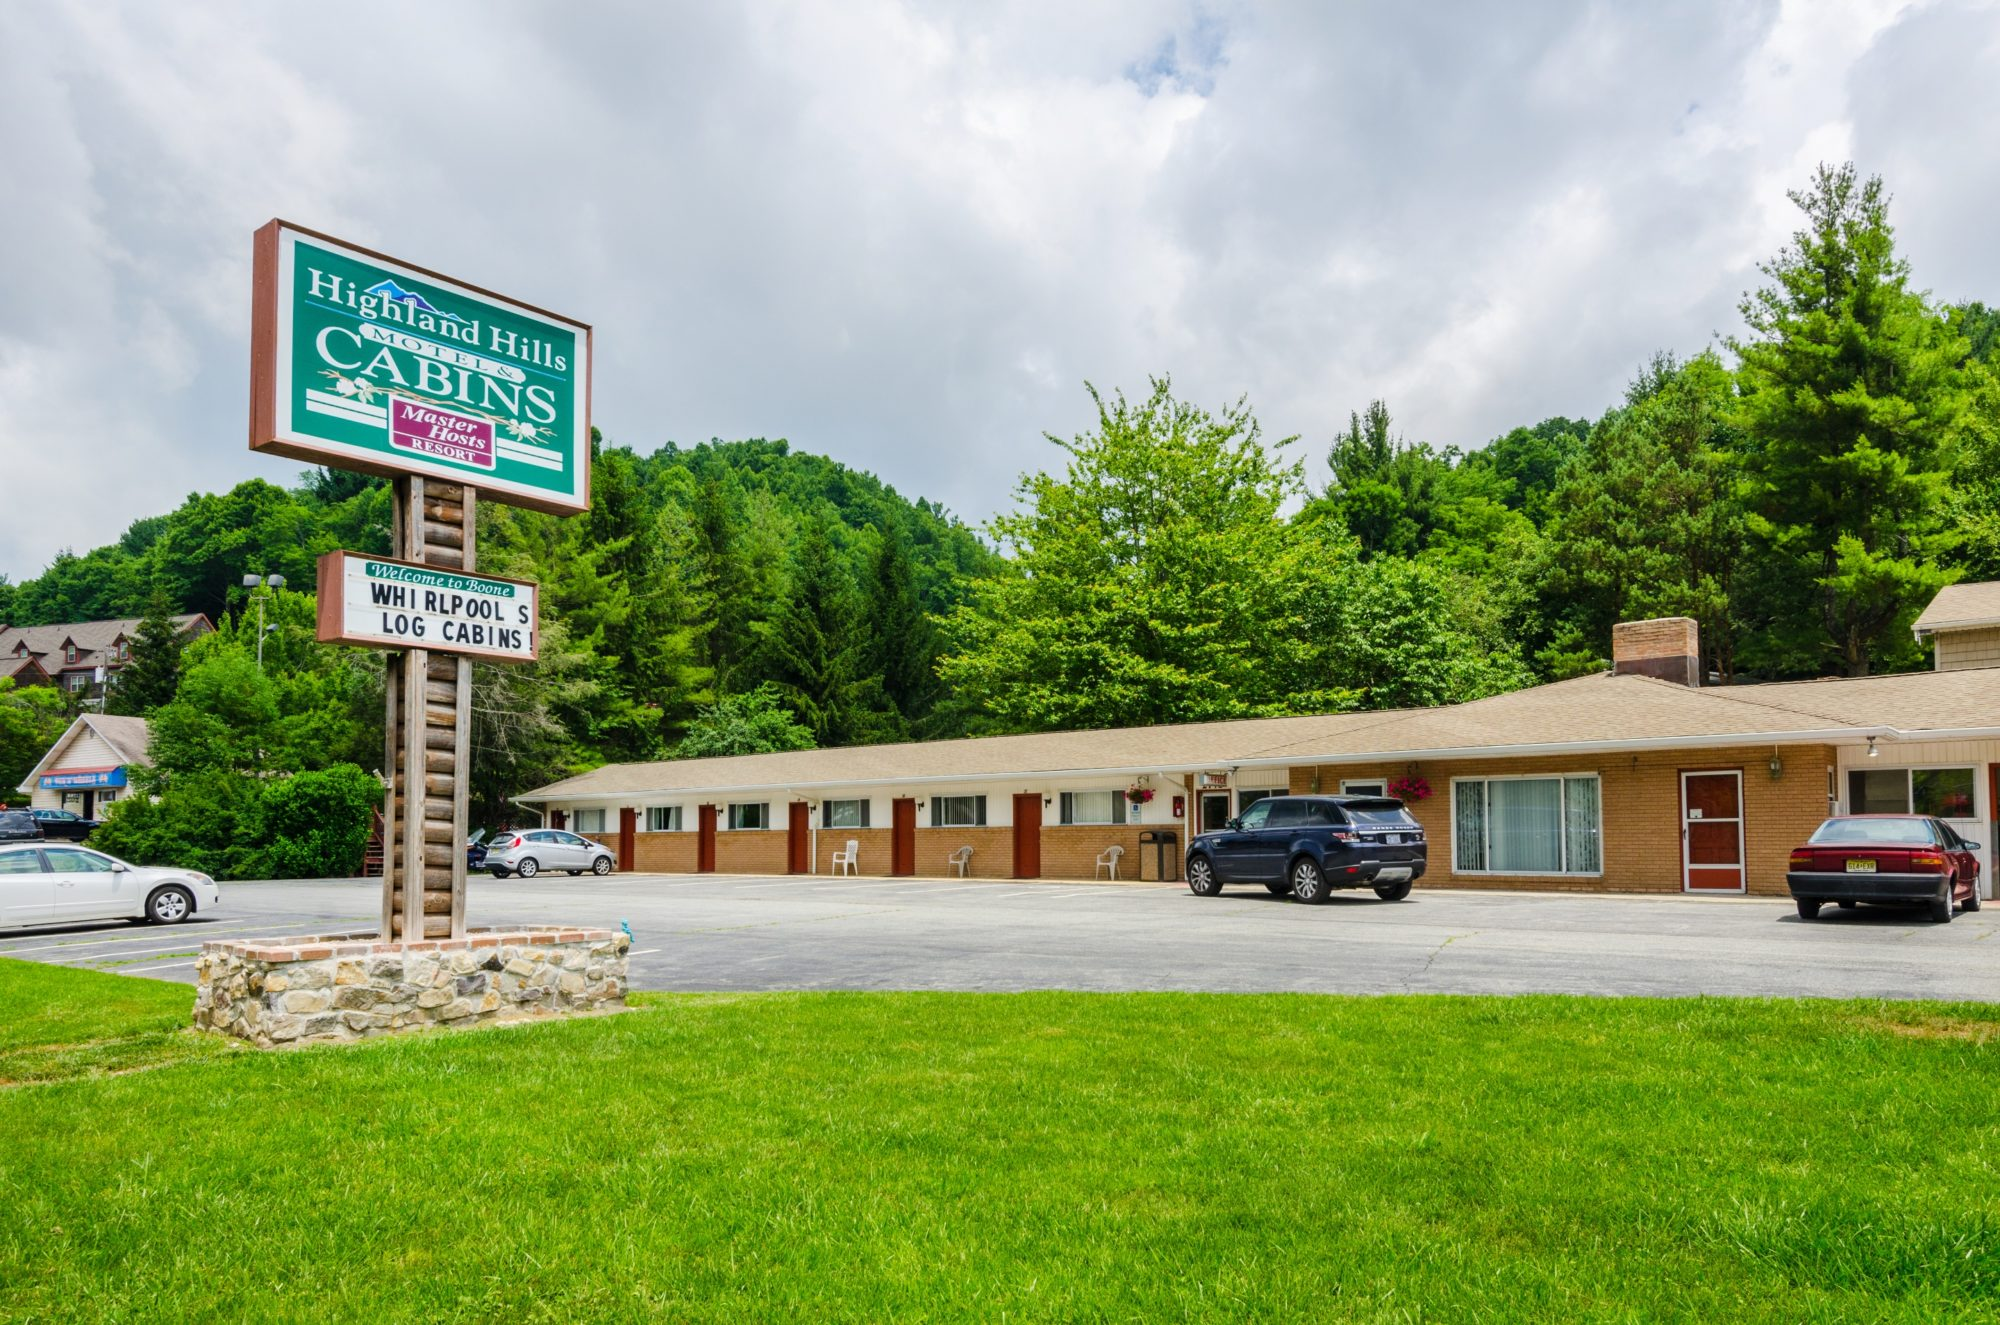 Motel exterior showing signage, motel rooms and parking area